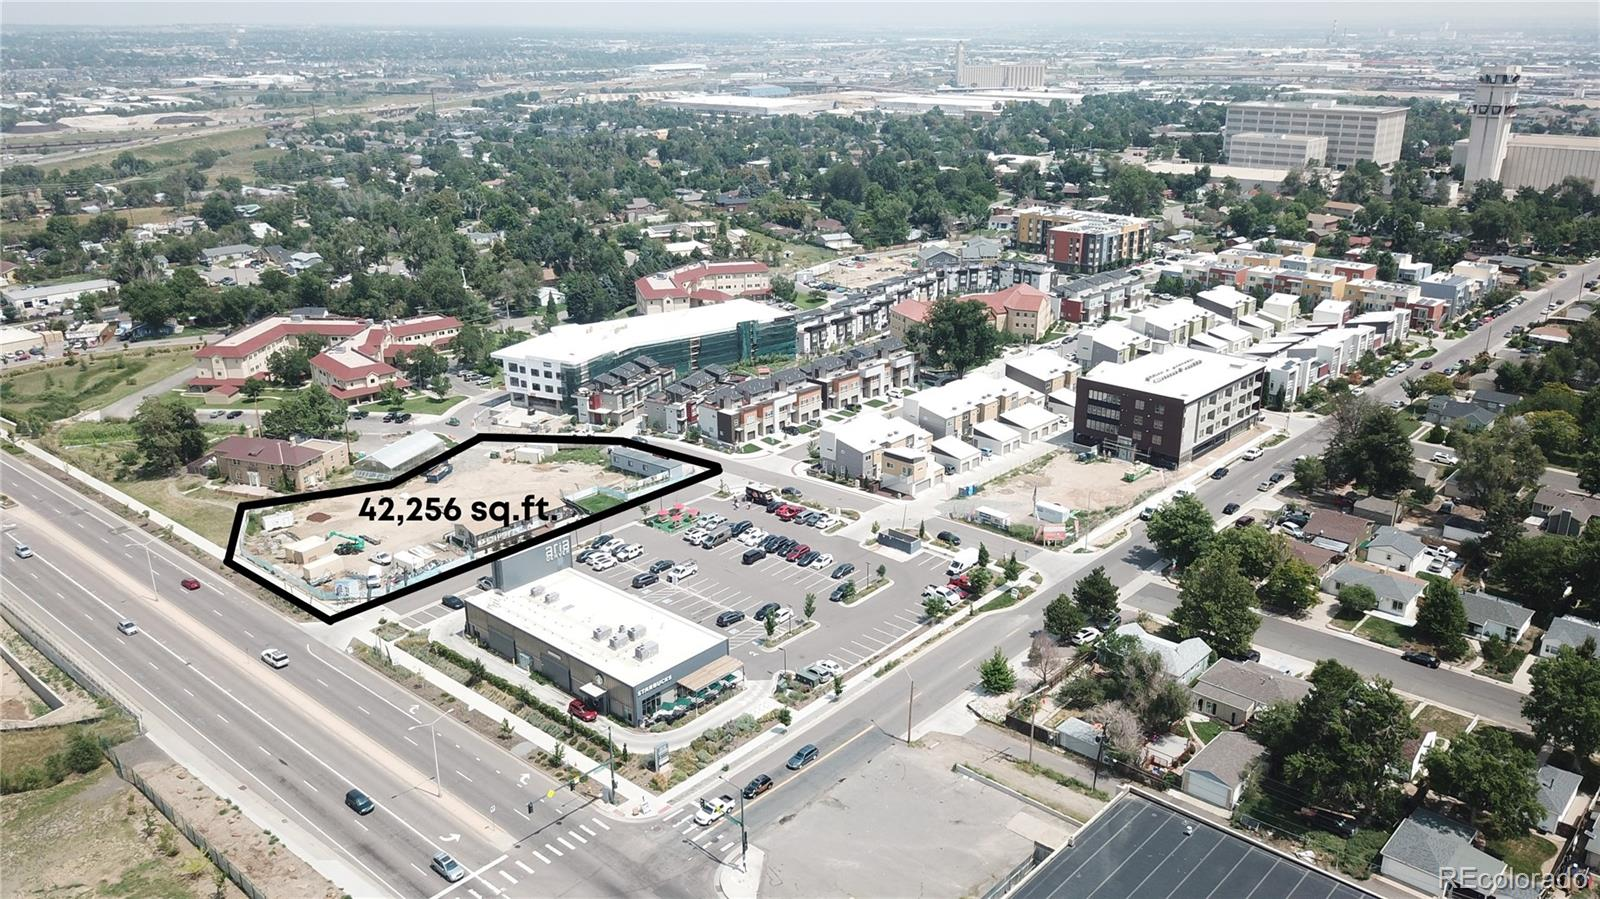 This large 0.97 acre infill redevelopment site is well positioned right across from Regis University in the sought-after Aria Denver Development. 5256 N Federal Blvd is located just North of I-70, just South of I-76, and West of I-25 at 52nd and Federal Blvd. This site is zoned R-MU-30 allowing for a 5-story 112-120 unit multifamily development. The lot is the last undeveloped site in the Aria community sitting adjacent to commercial retail anchored by Starbucks. The building will have frontage off Federal Blvd which sees ~35,000 VPD and is located in between two major highways making commuting favorable. Owner has completed all entitlement work, Phase I & Survey are available during the diligence period.